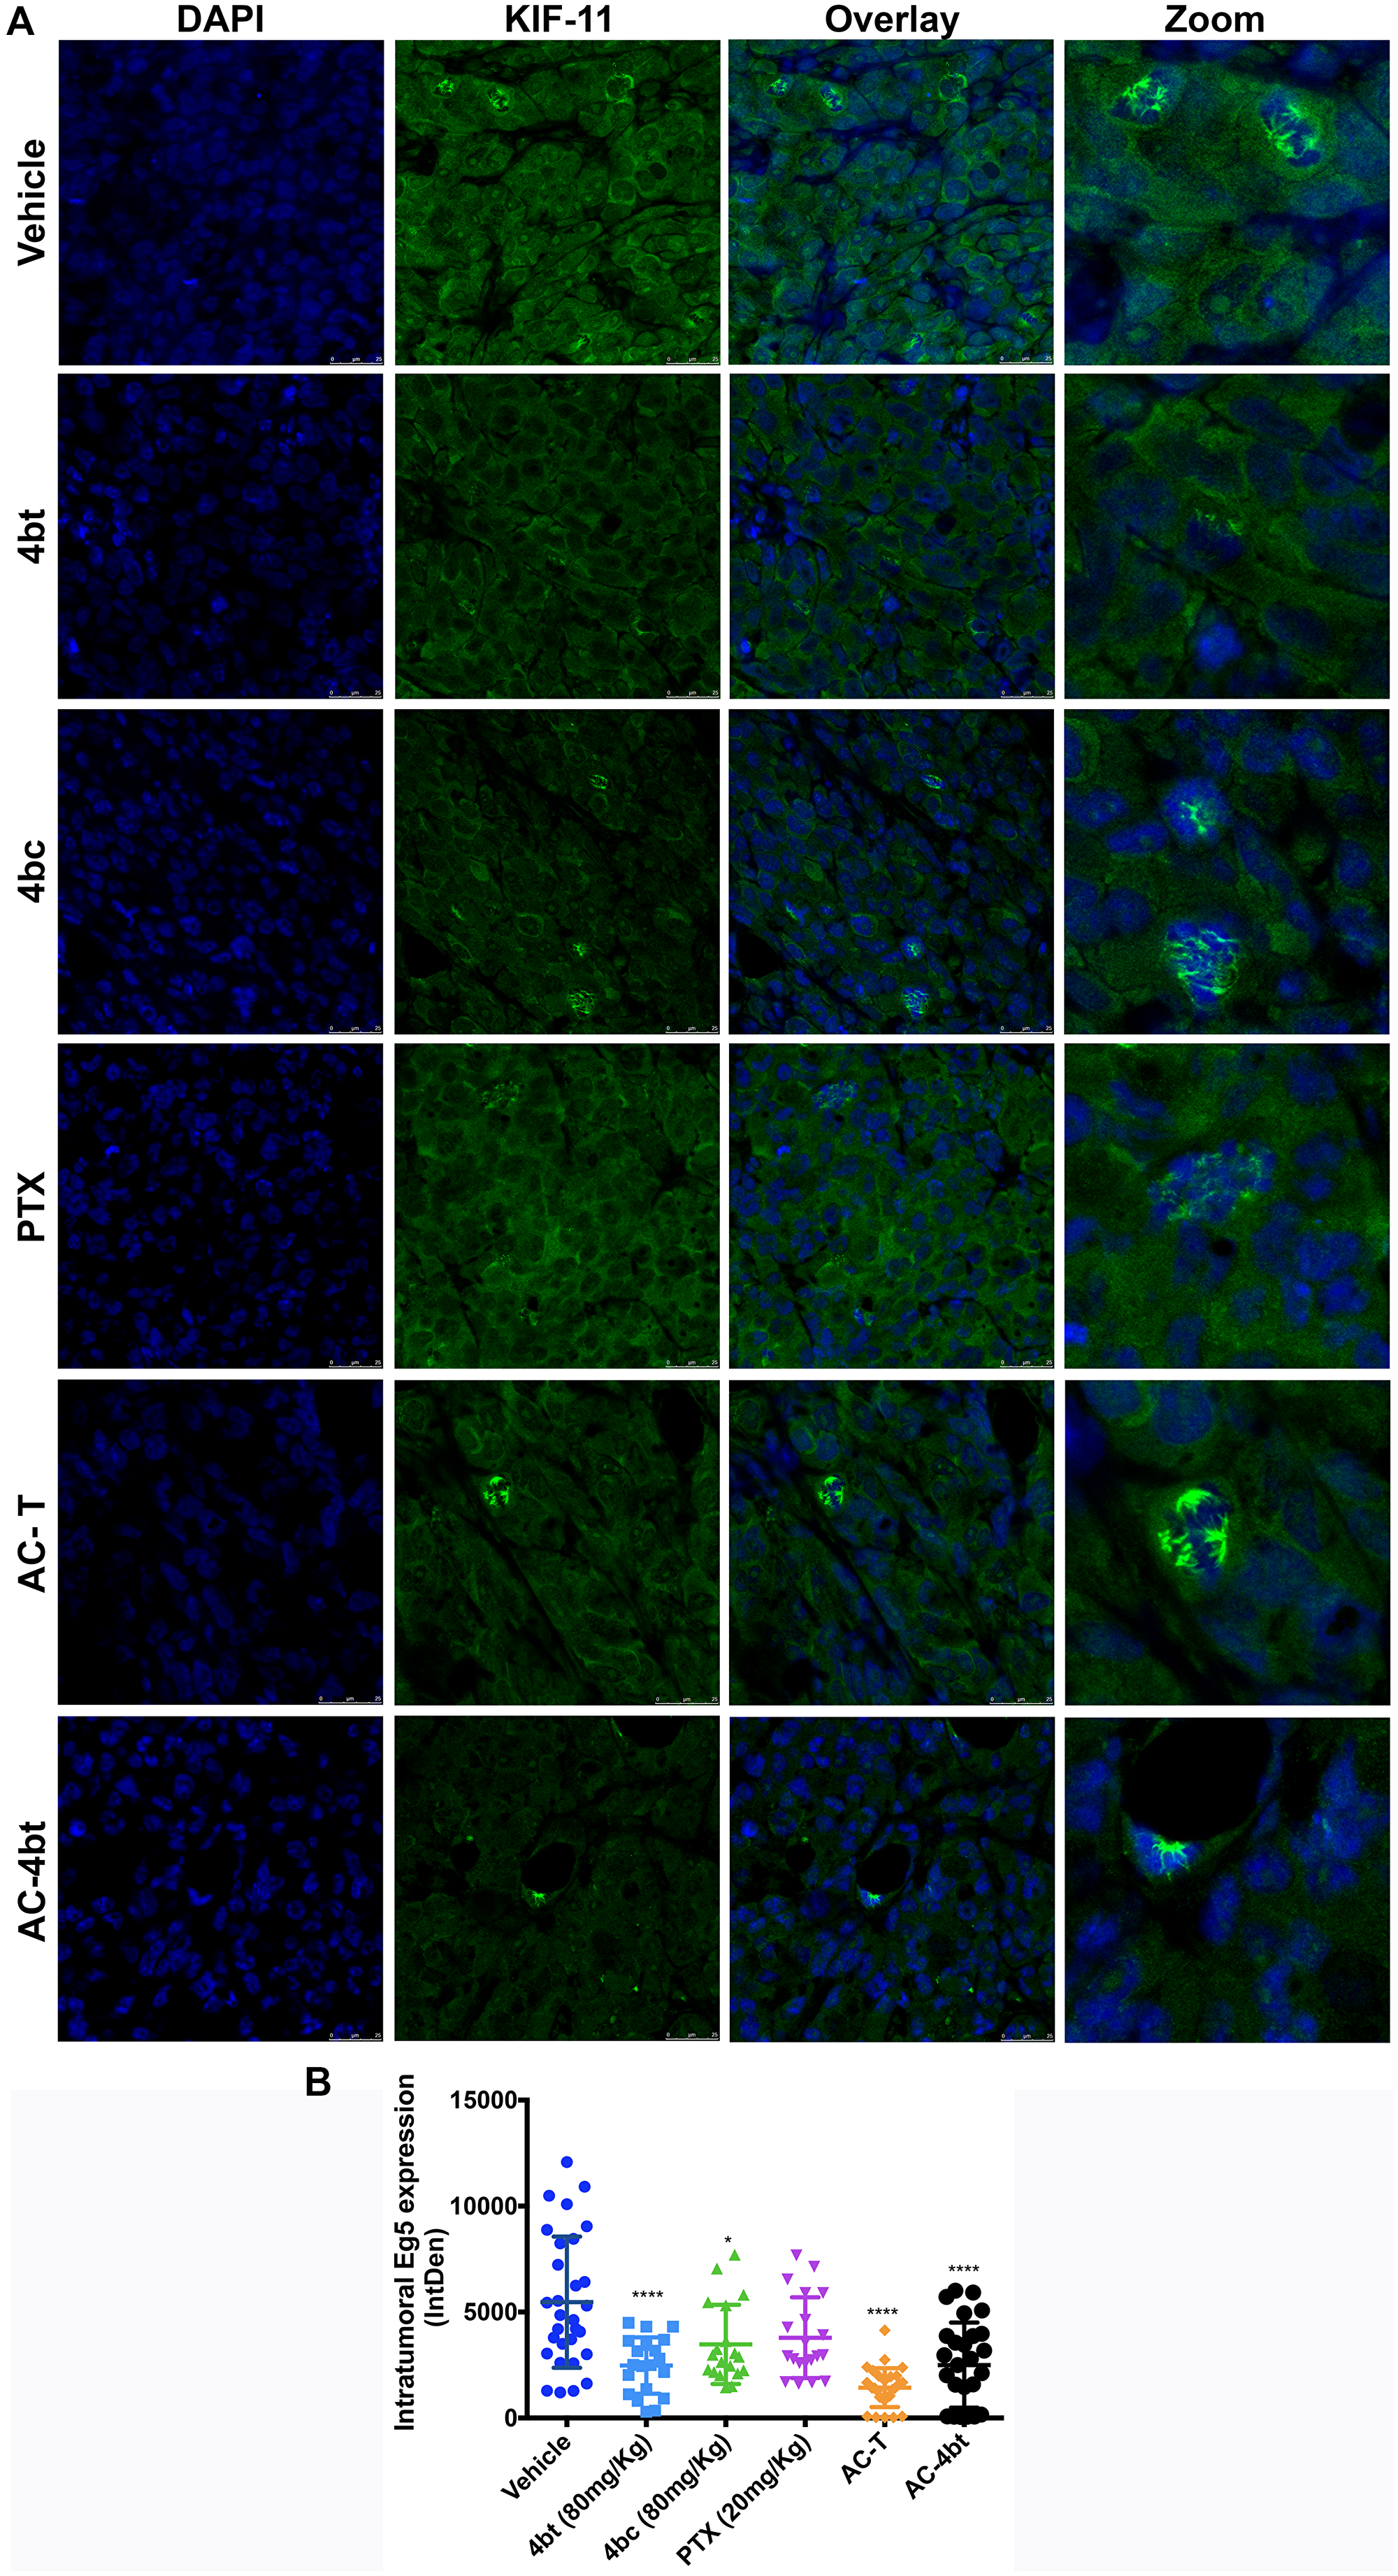 Analysis of intratumoral KIF11 expression.